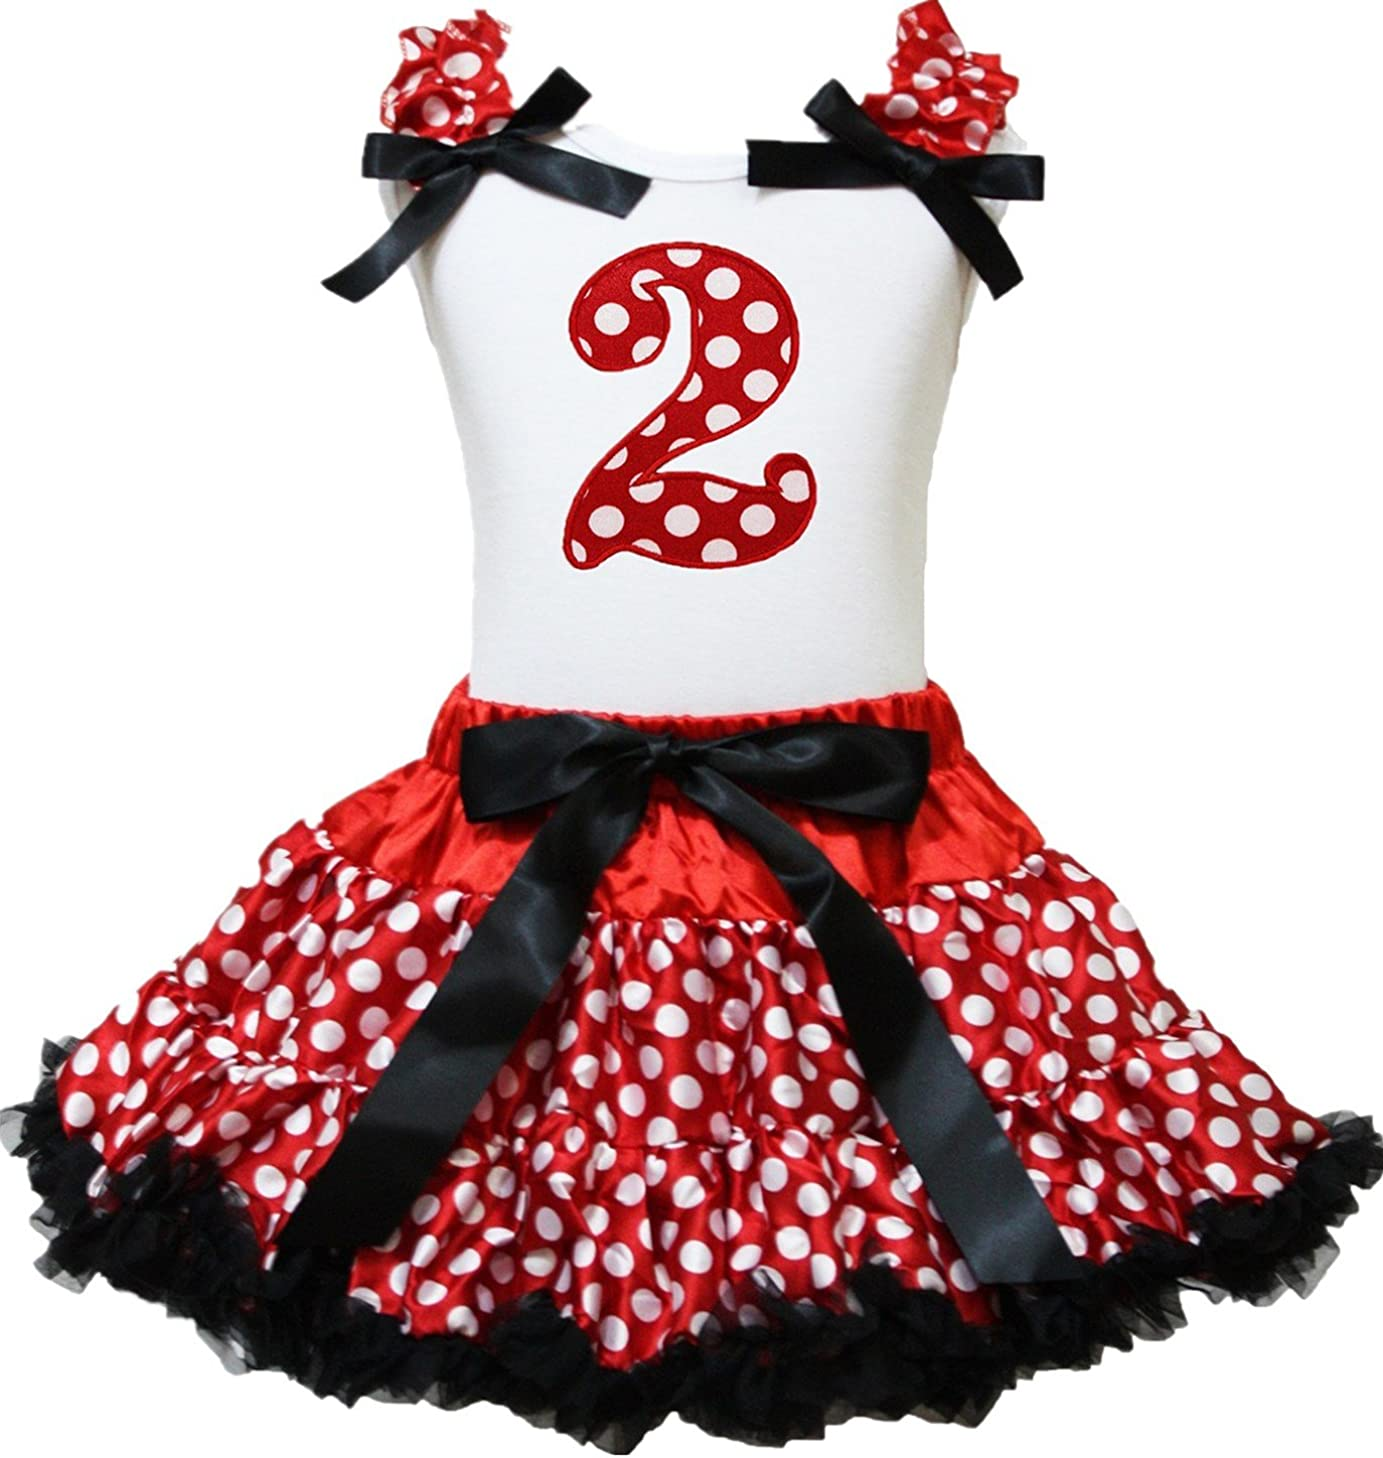 Petitebella Red Dots 1st to 6th sold out Skirt White Petti Shirt Factory outlet